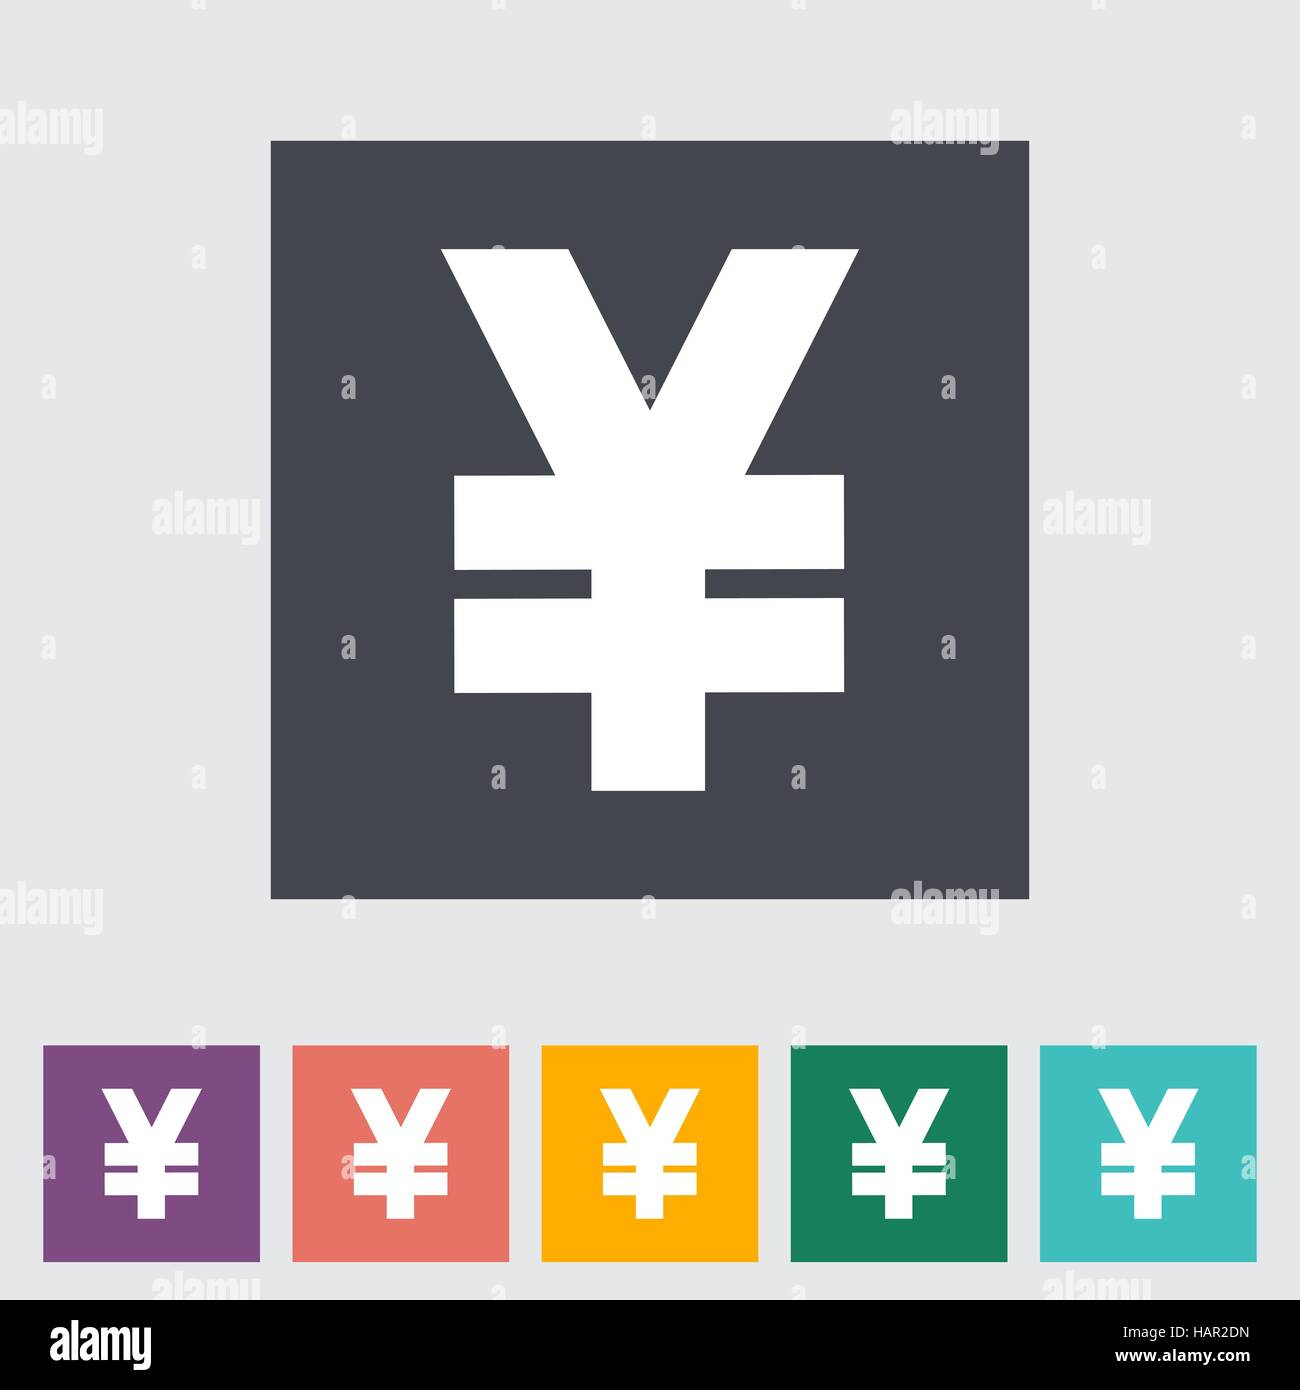 Yen flat icon. Vector illustration. - Stock Image